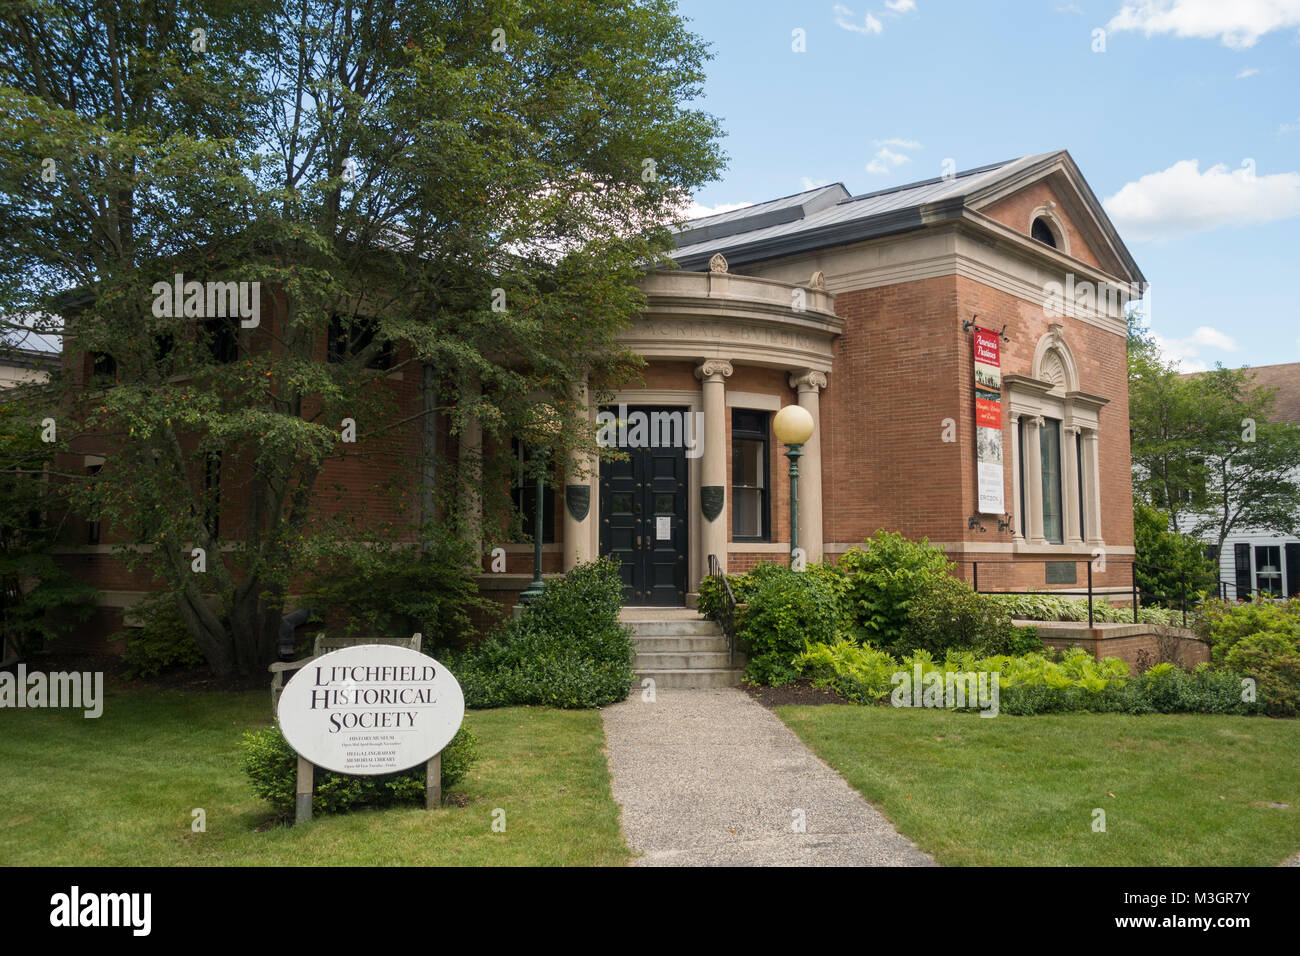 Litchfield Historical society building CT - Stock Image